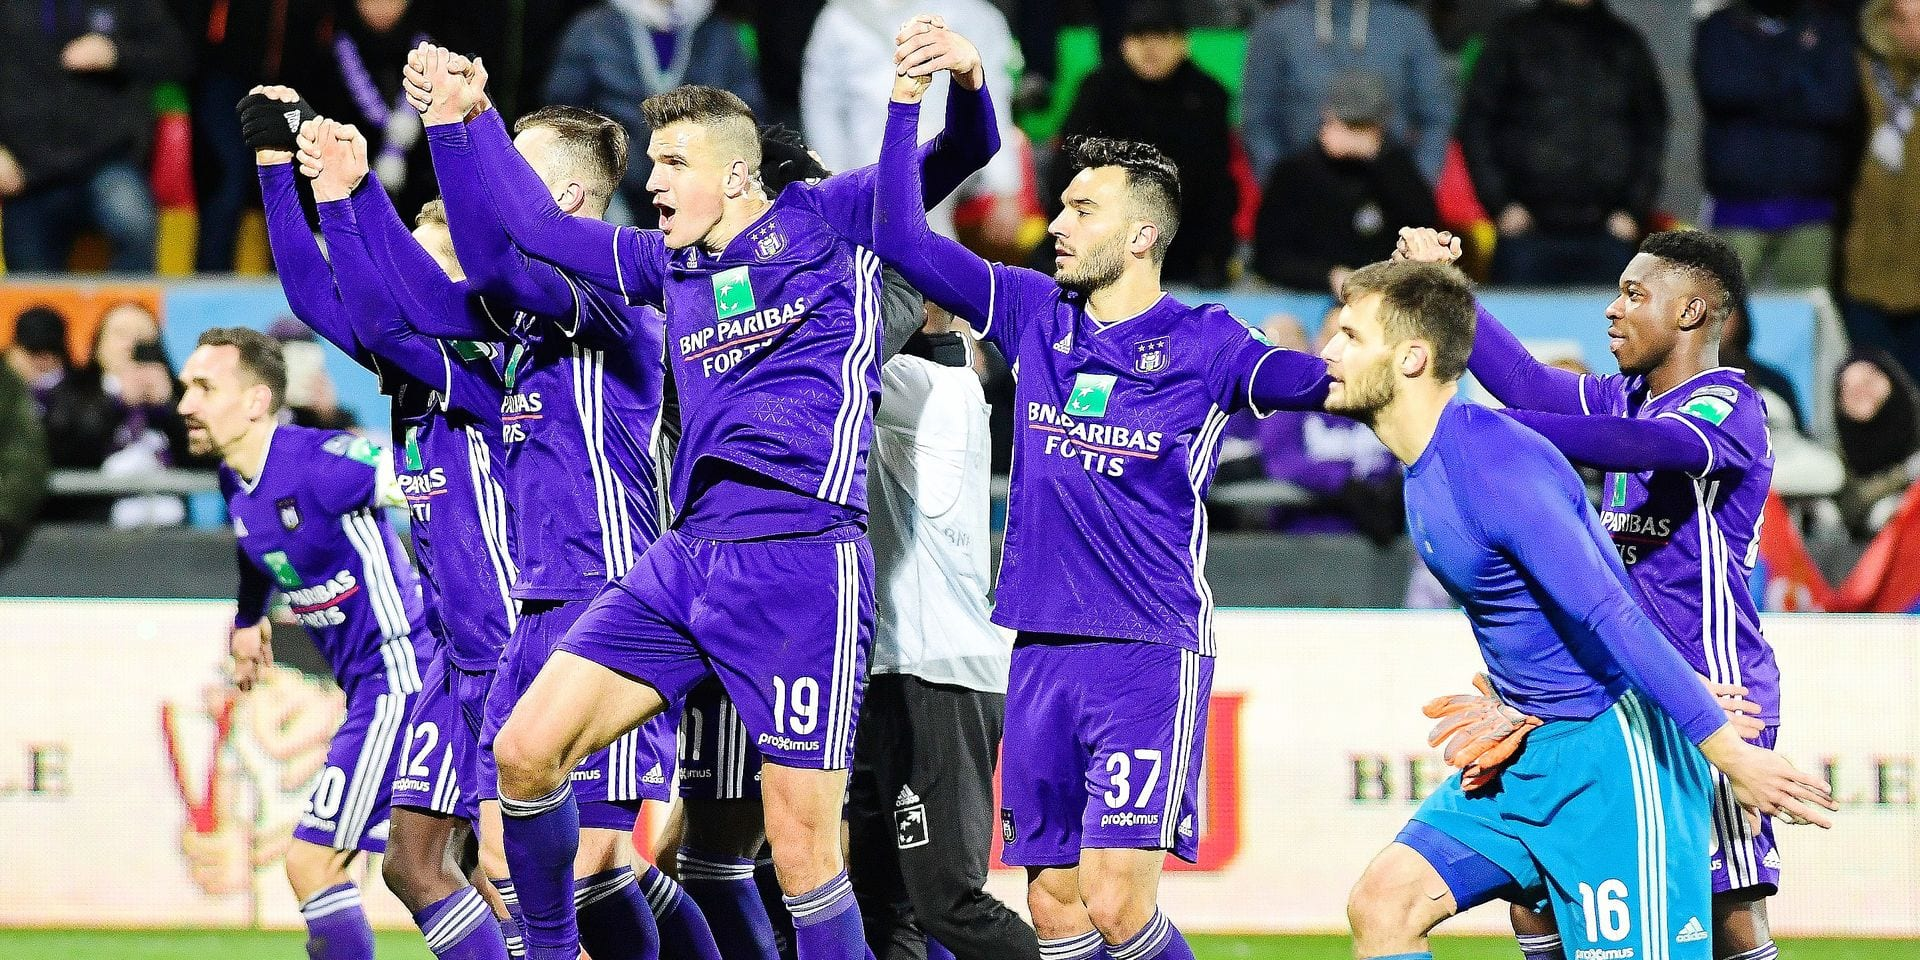 Anderlecht's players celebrate after winning a soccer game between KV Oostende and RSCA Anderlecht, Sunday 17 March 2019 in Oostende, on the 30th day of the 'Jupiler Pro League' Belgian soccer championship season 2018-2019. BELGA PHOTO LAURIE DIEFFEMBACQ